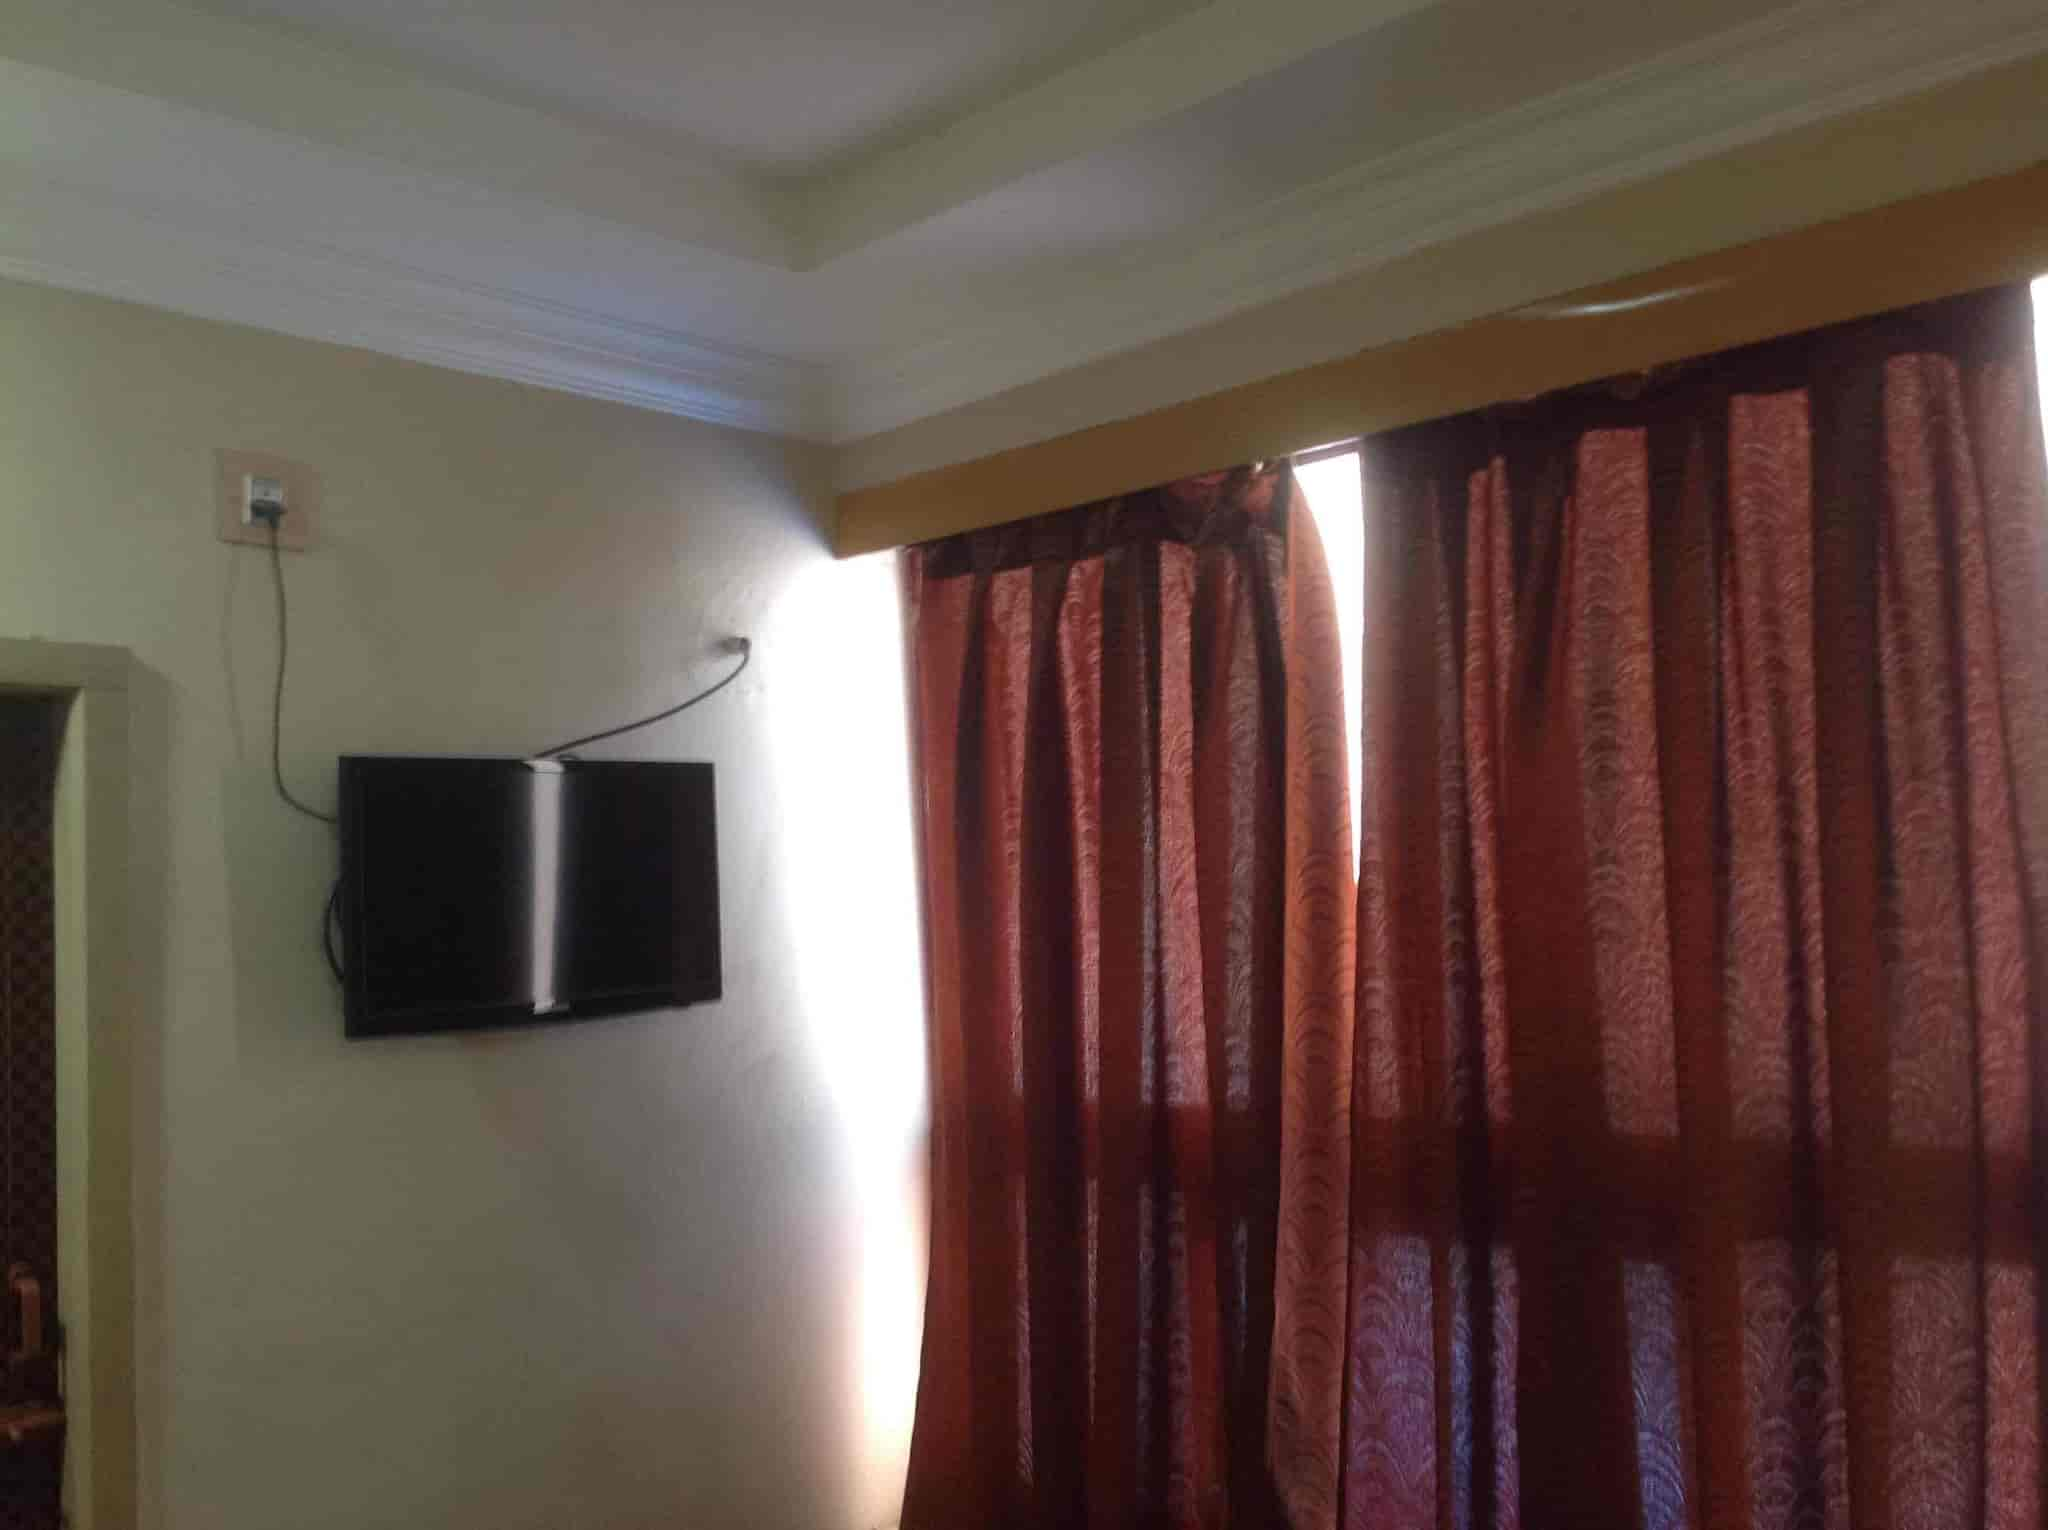 saloncurtain curtain dividers ideas room dividerscurtain stand from hanging sale ikea curtains for